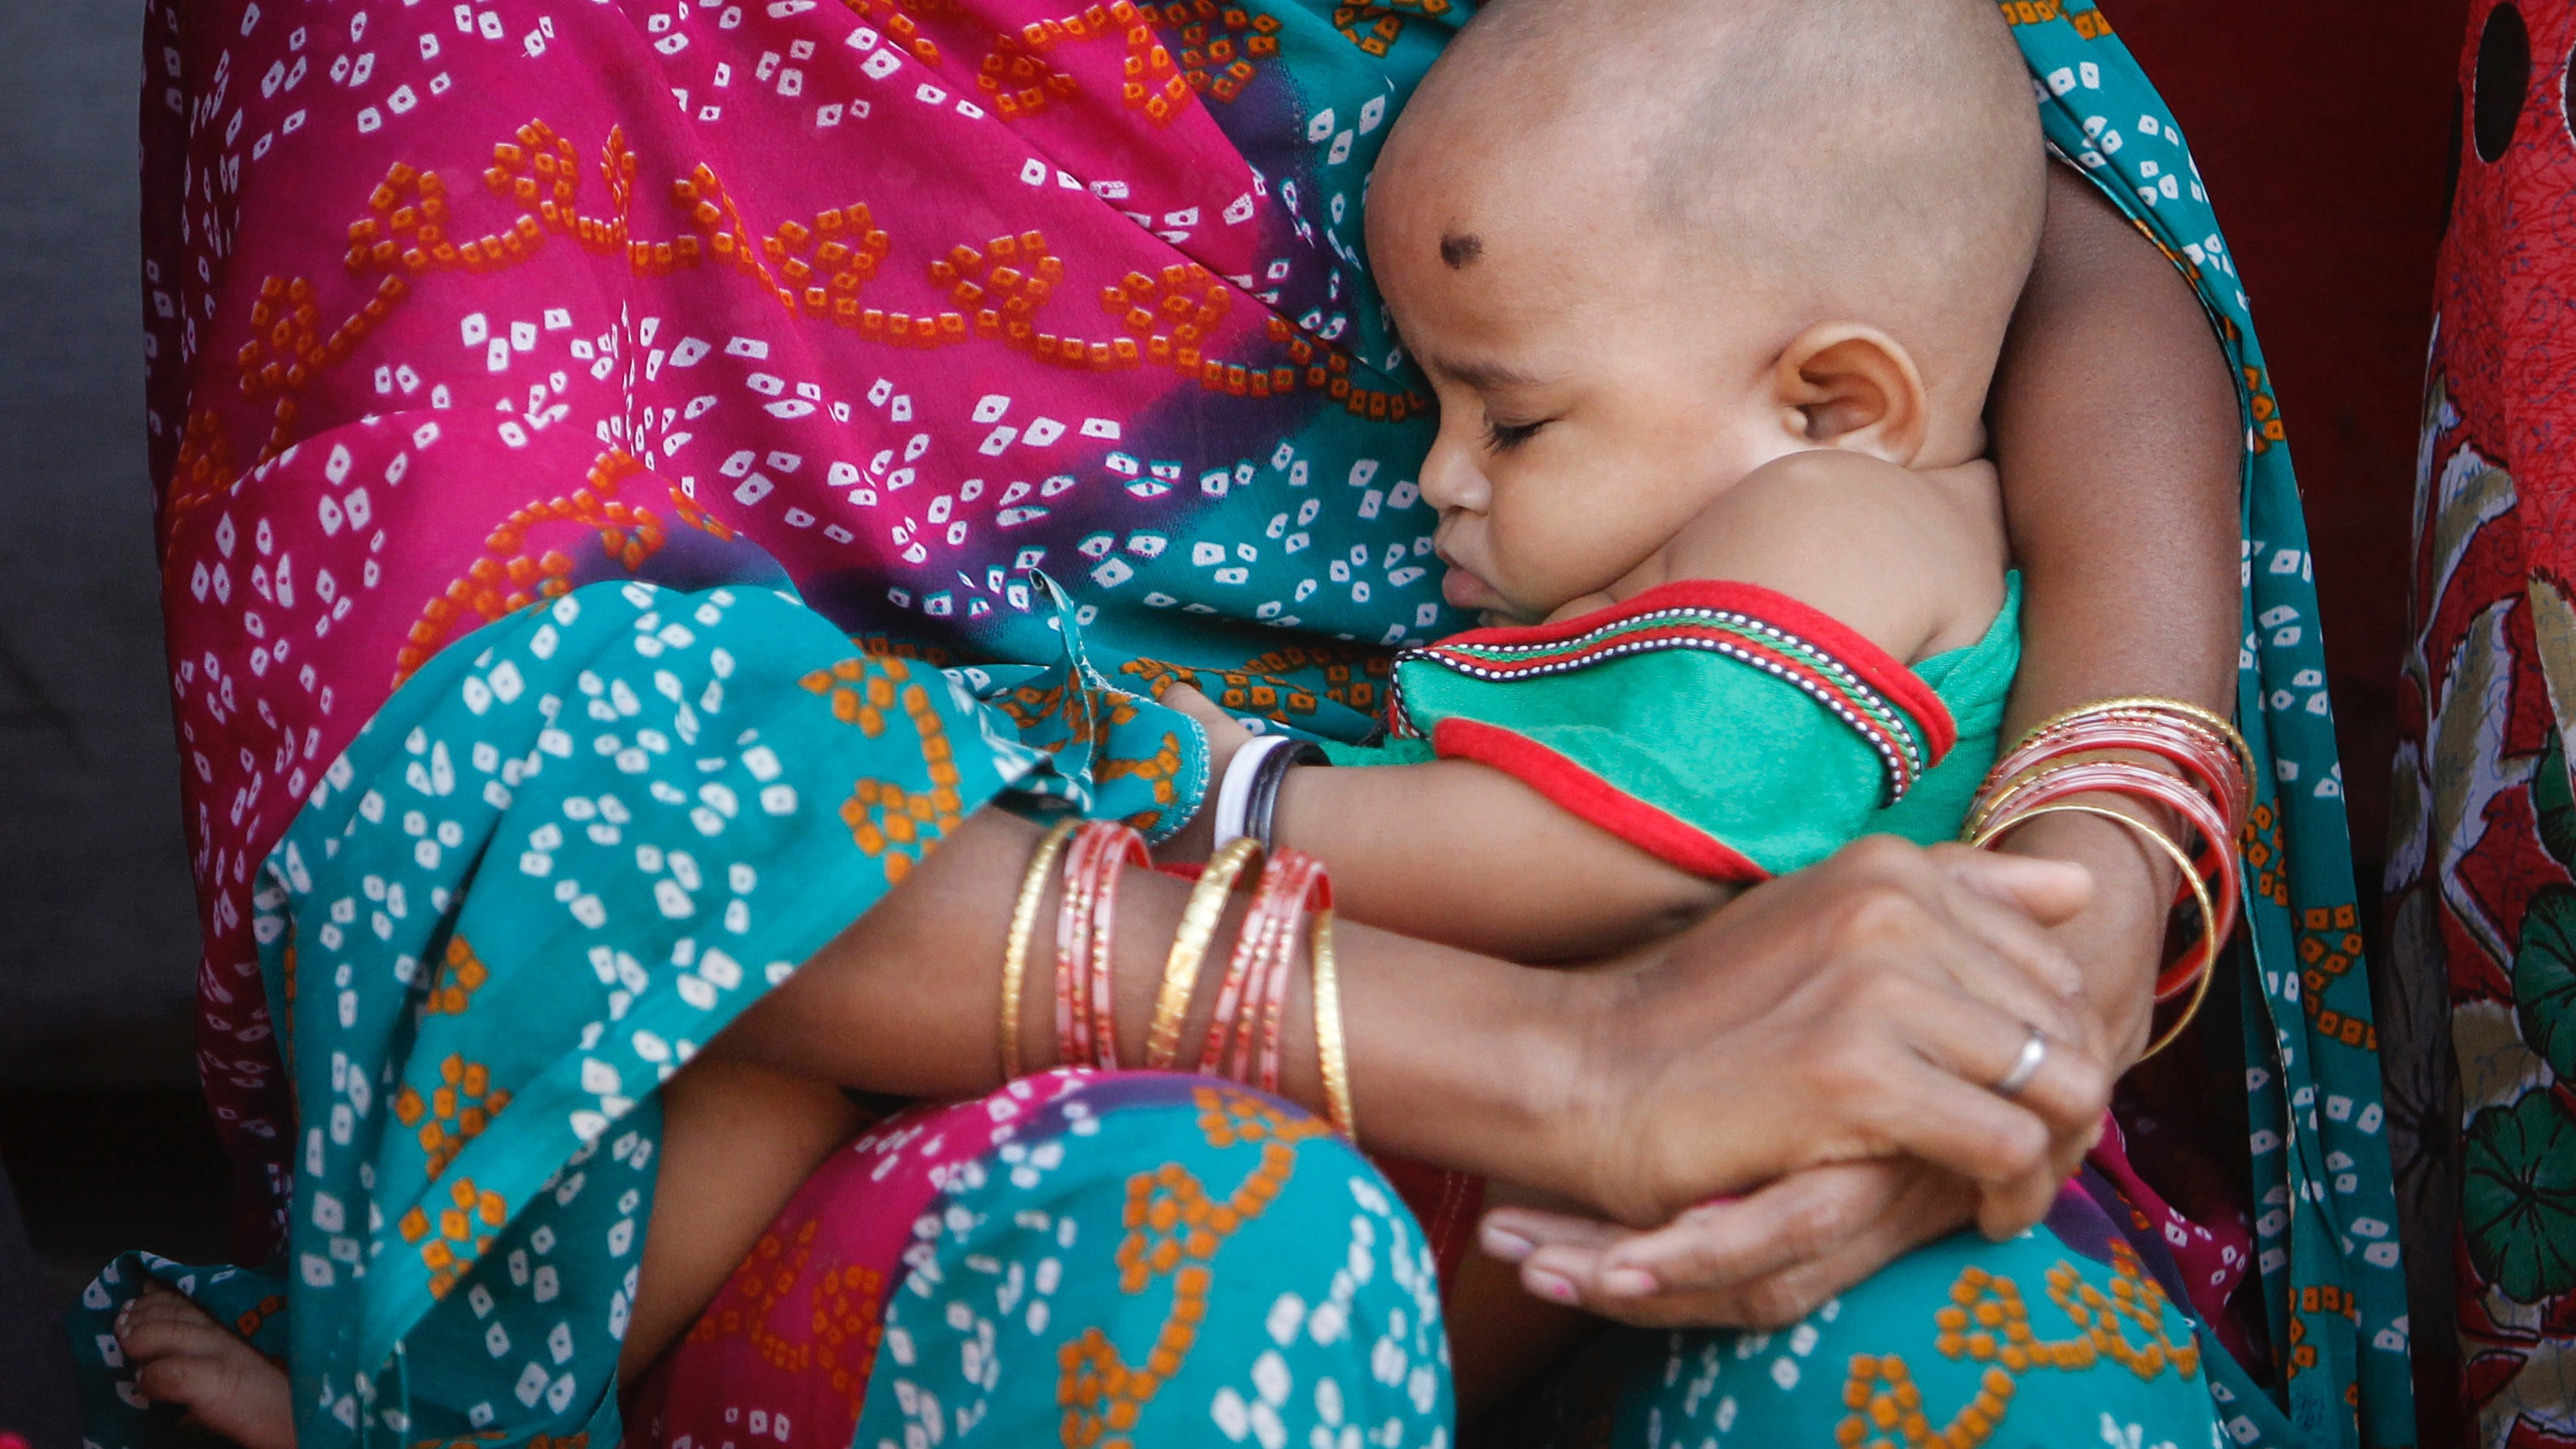 A woman holding her baby